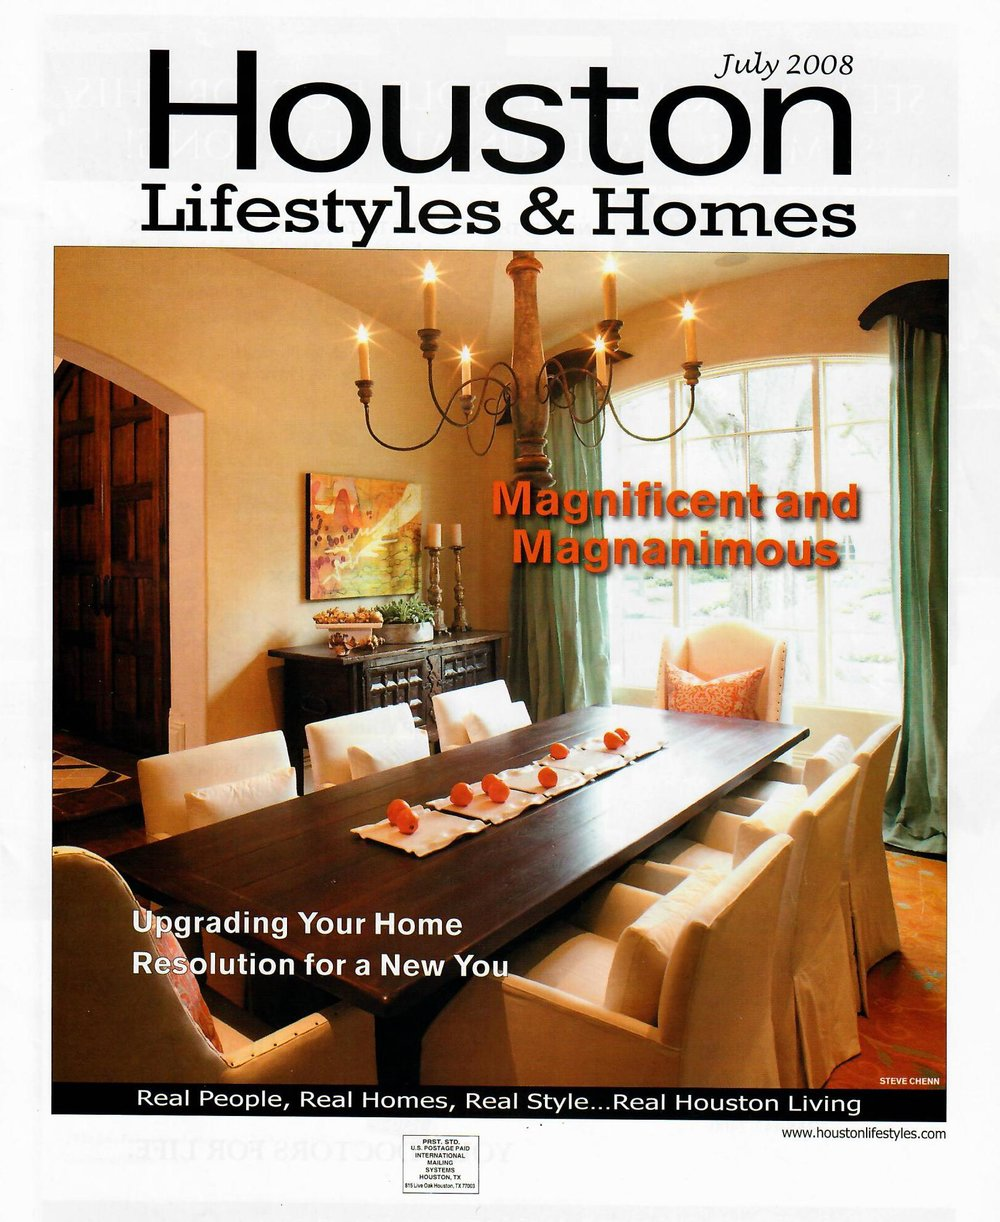 houston lifestyle magazine.jpg